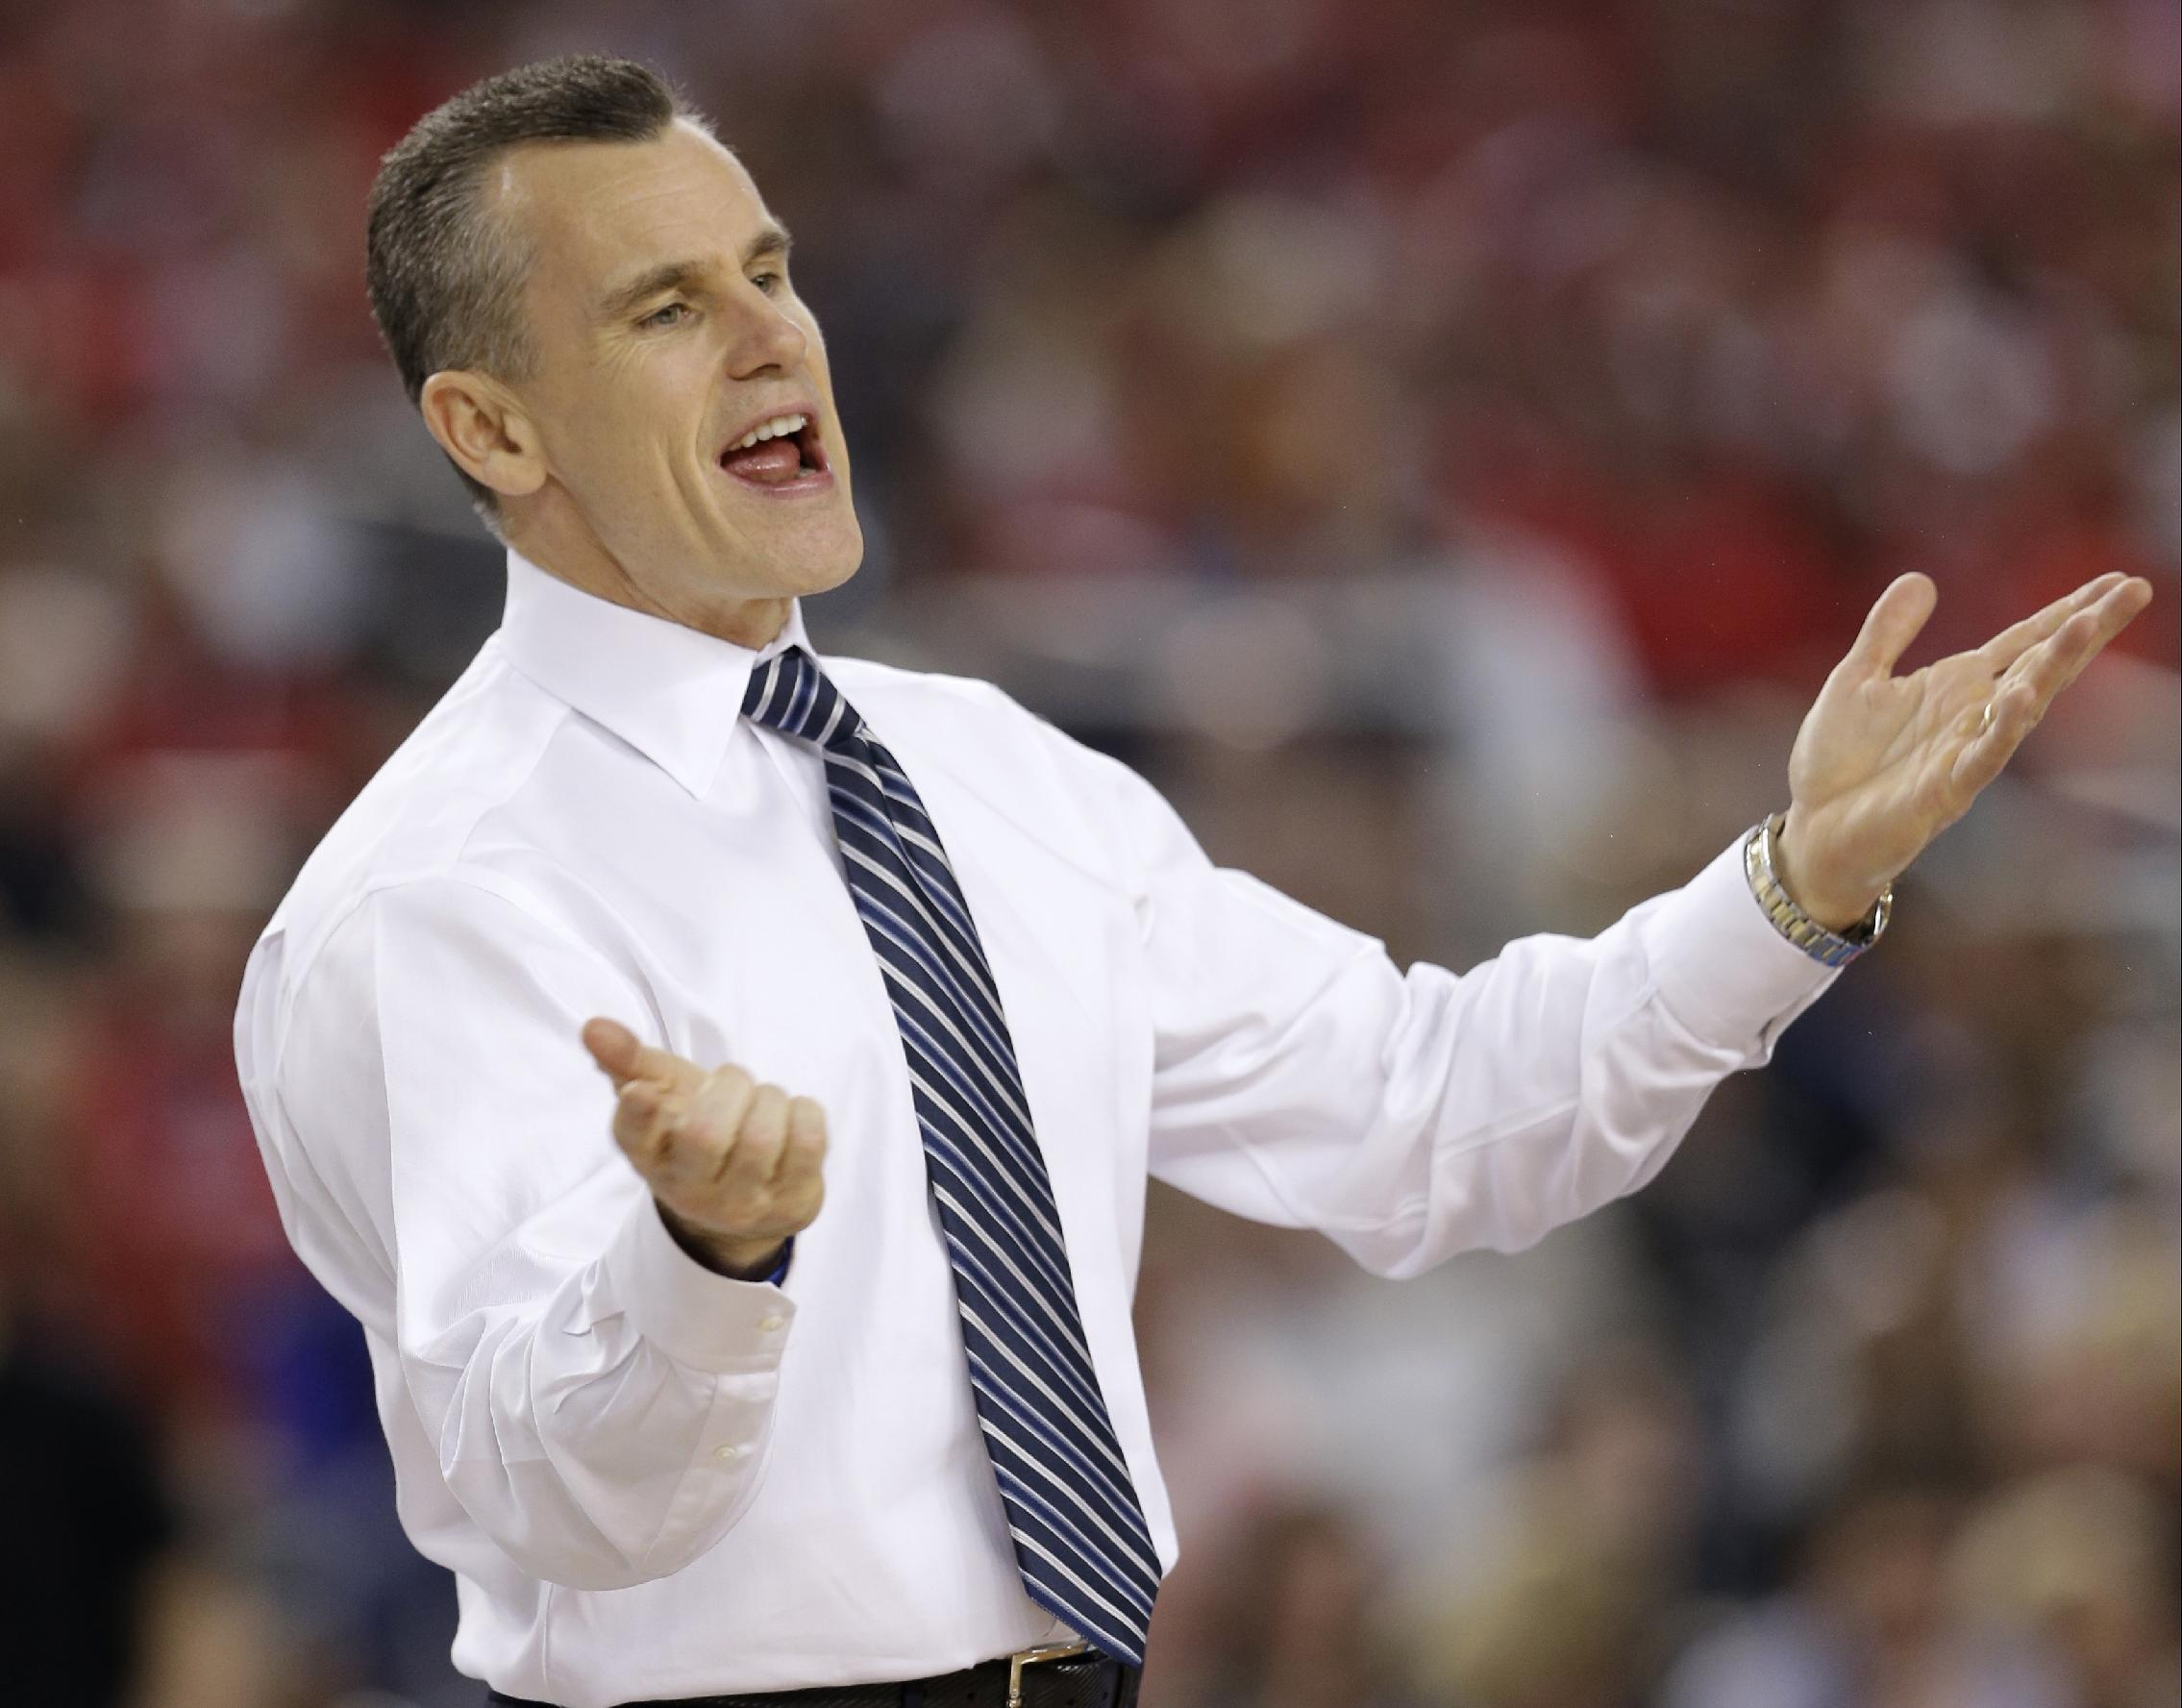 Donovan says goodbye, Florida moves on with coaching search